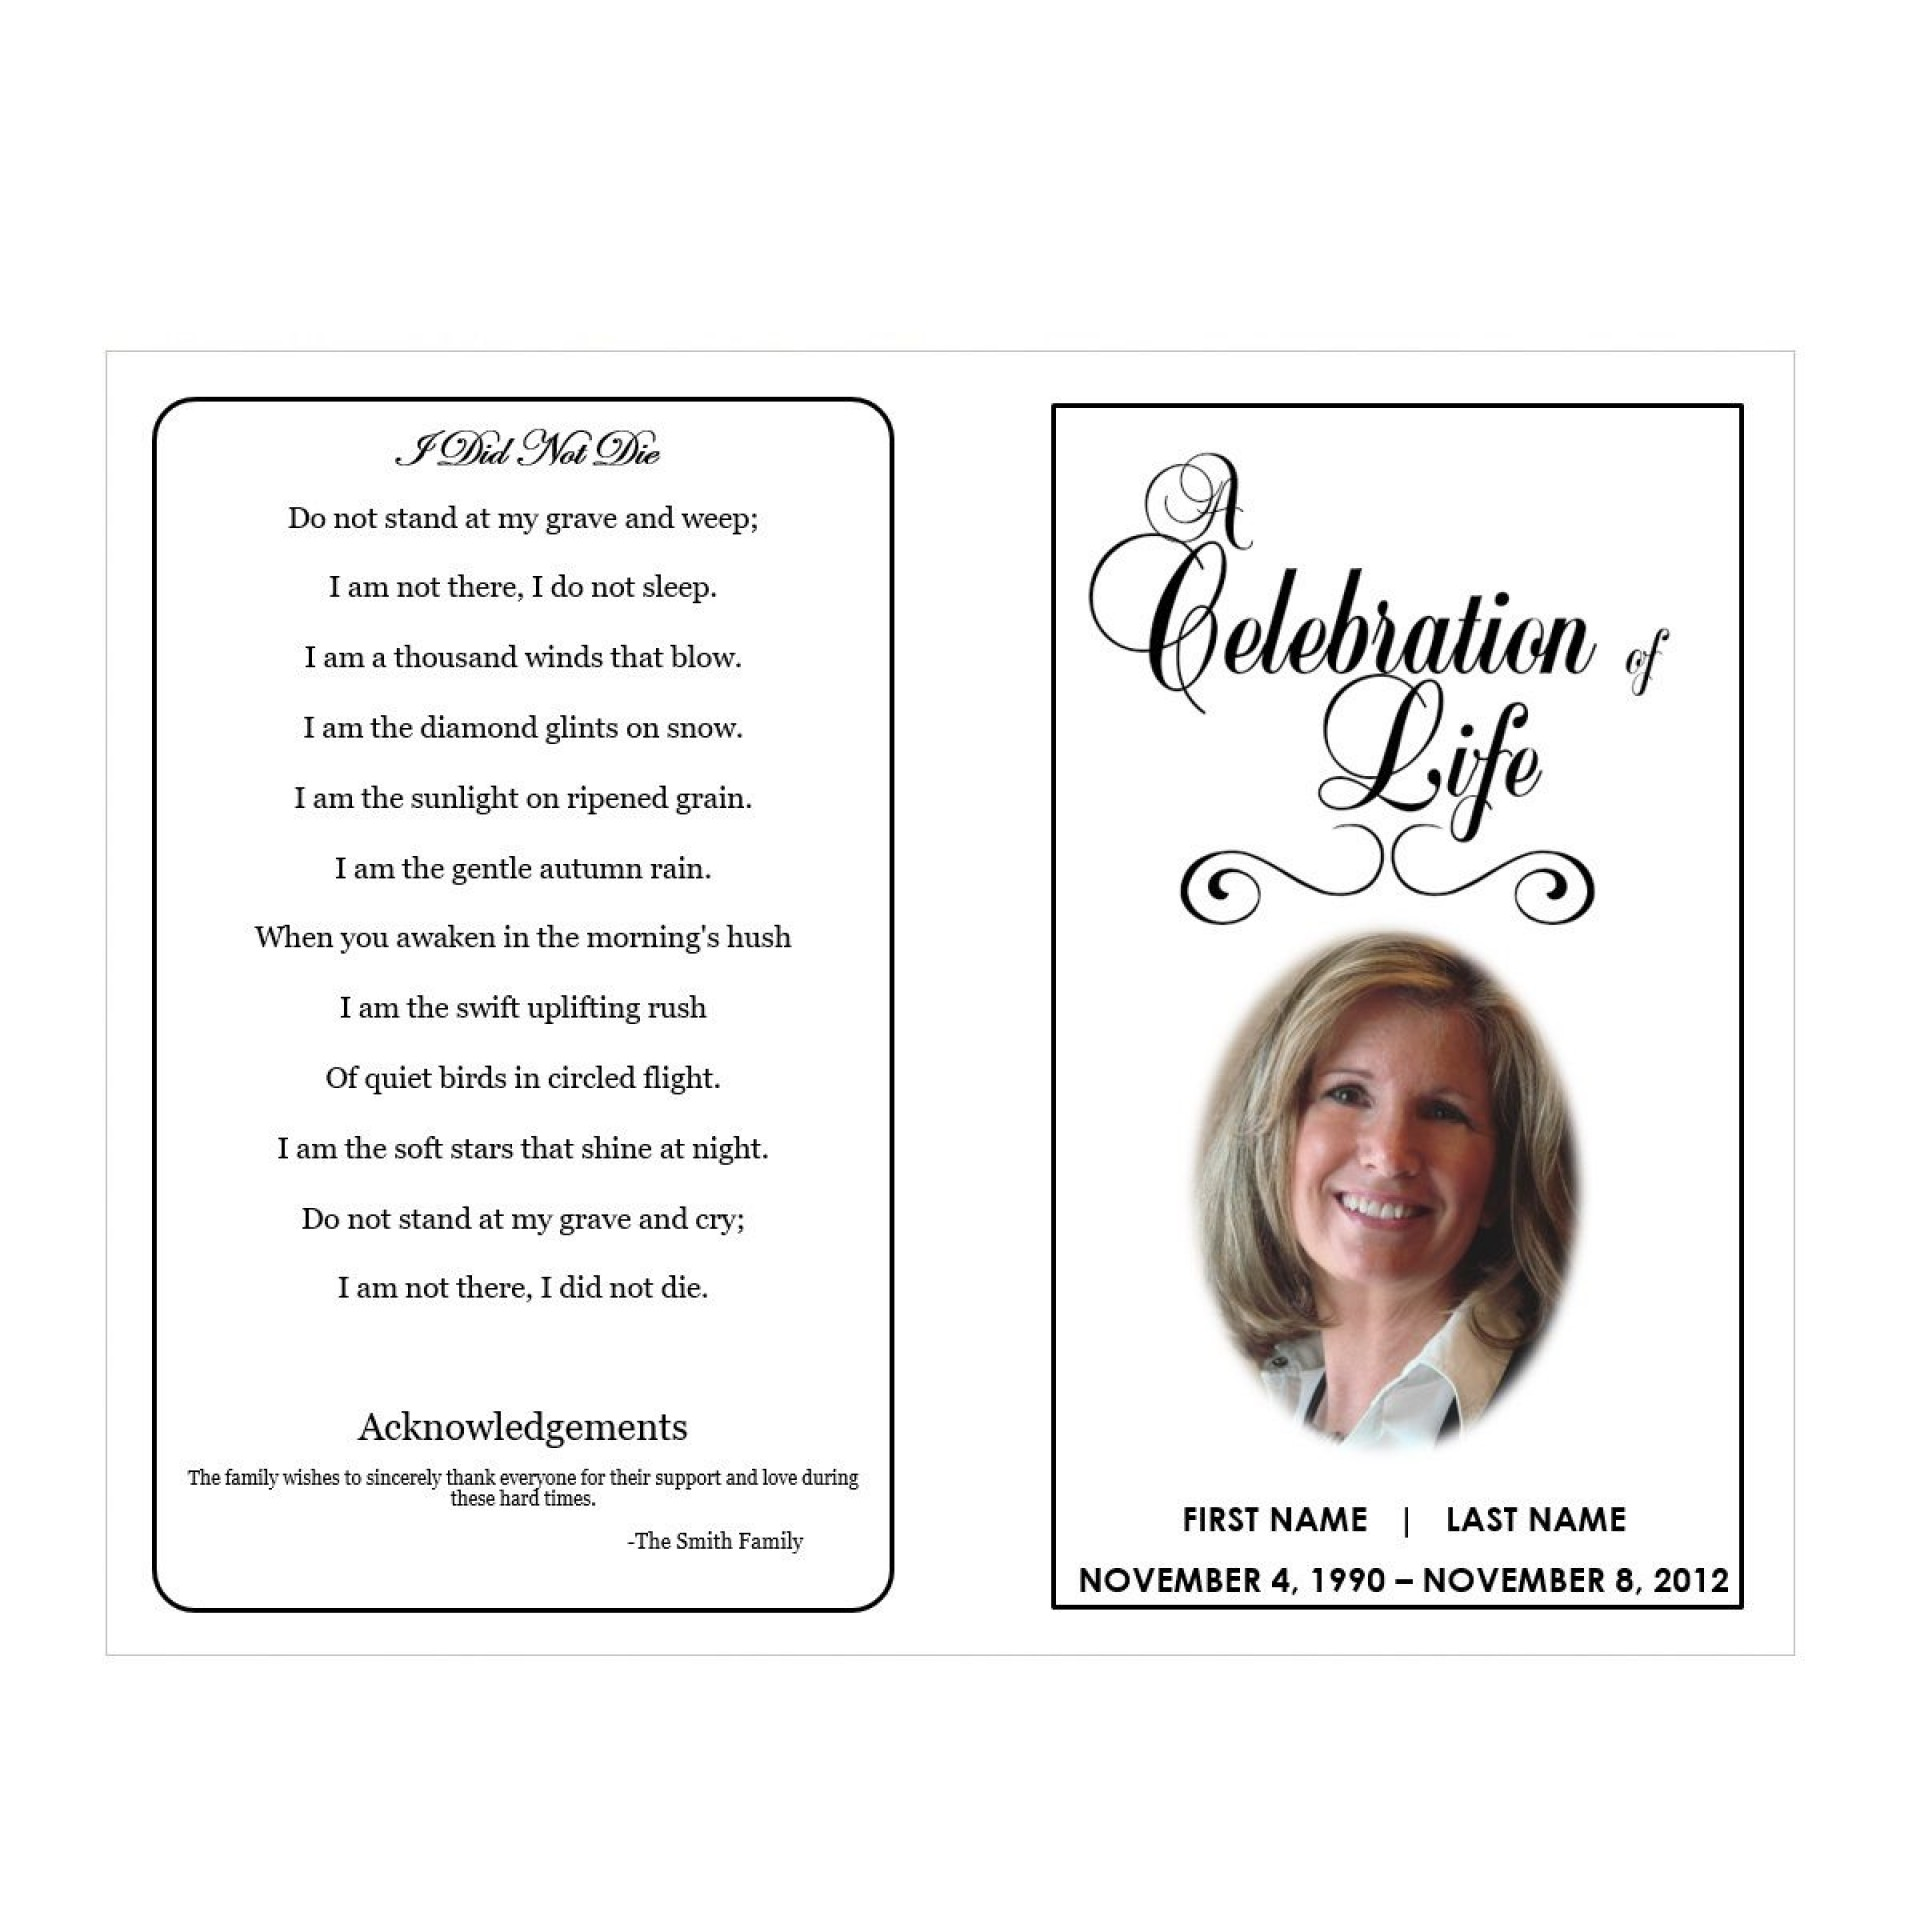 008 Top Funeral Program Template Free Idea  Printable Design1920